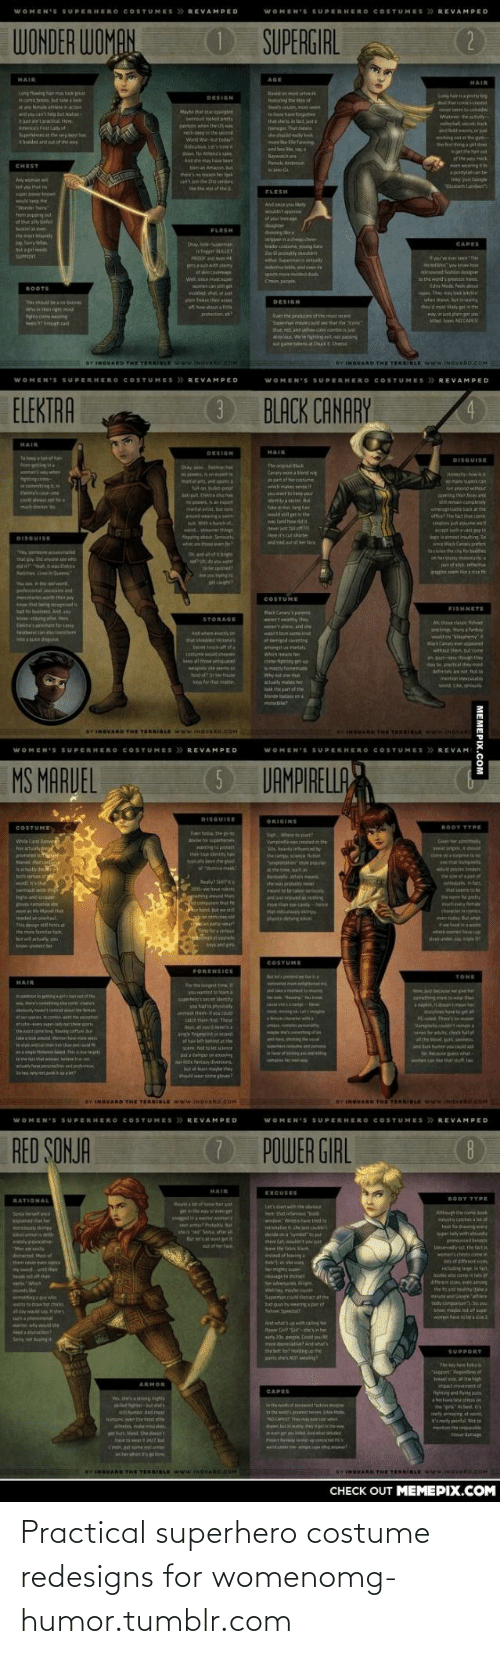 T We: WOMEN'S SUPERHERO COSTUMES REVAMPED  WOMEN'S SUPERHERO COSTUMES > REVAMPED  (2  WONDER WOMAN  OSUPERGIRL  HAIR  AGE  HAIR  Long tiowing hama took pat  ncame boos, ht el  tay female athleteinactn  and canthel tal  ejust an'tpractical. Here  Aneics Fit Lady of  Suphees the ryt haL  ahraded and out of the was  Besed an ost artor  tong hepntty b  DESIGN  feing the Man of  Ste musin mat sem  lo h hae fr n  that shein tact.ja  tniper. That me  6shodrely ok  m e Beaning  dthatconksae  newr seem onede  Whatee the vy  Mayehat starsgangv  wimst lked putts  T hen the US w  voleytal c, ack  ndet ewnt orat  NOking eutat the gm  etthing a gte  reck-deen in the seond  Warld War-sut tod  Riculs Lets toeit  and less ie sa  Baywahe  e  ger she hair  f the wyck  venangite  pntyta be  Anshe mh ee  t an Amaun tut  Pamela Andenan  CHEST  there's nemon her look  an't inthe 2et cerary  le the est f the  Any wom w  zatth Lab  tet you chut  FLESH  wuld e the  nd since you liy  onder Tin  trem popping ut  of that sly tifpl  of your tnge  daughter  eing he  rppernchep.ch  ader.costm young Ka  Zor E pabakly shoukdt  wer. Smanitlly  metrata anden  Suntier e  FLESH  te met l  Sery la  but a pi  CAPES  unuts- Weo  khigen LLET  PROF nd et  yve erem The  diles yos kowow  knwd fhist desner  p it with plenty  of in toege  We, oit ge  aomencan et  stabbed shot t  pos noremodest.ud  Cmn pecple  wewuidseutesthees  dna Mad. fe ut  BOOTS  con They ay lon itin  when draw but i ty  plam feee ther se  of how ahout a e  arotection h?  DESIGN  This should be a nabainer  they d mest ikely petin the  Whain theig  hse neain  esi Ennigh aid  ni  ay tain get you  Mled S NO CARES  Evethe ardutnof the mst  Supurma malecd seethat the one  Nut. red and ytiow color comoj  acou Weigtongenot pansing  at amete at CukEChme  BY INGVARD THE TERRIBLE www.NOVAROCOH  BY INGVARD THE TERRIBLE www.INSVARD COH  WOMEN'S SUPERHERO COSTUMES > REVAMPED  WOMEN'S SUPERHERO COSTUMES >> REVAMPED  3BLACK CANARY  ELEKTRA  4.  HAIR  HAIR 